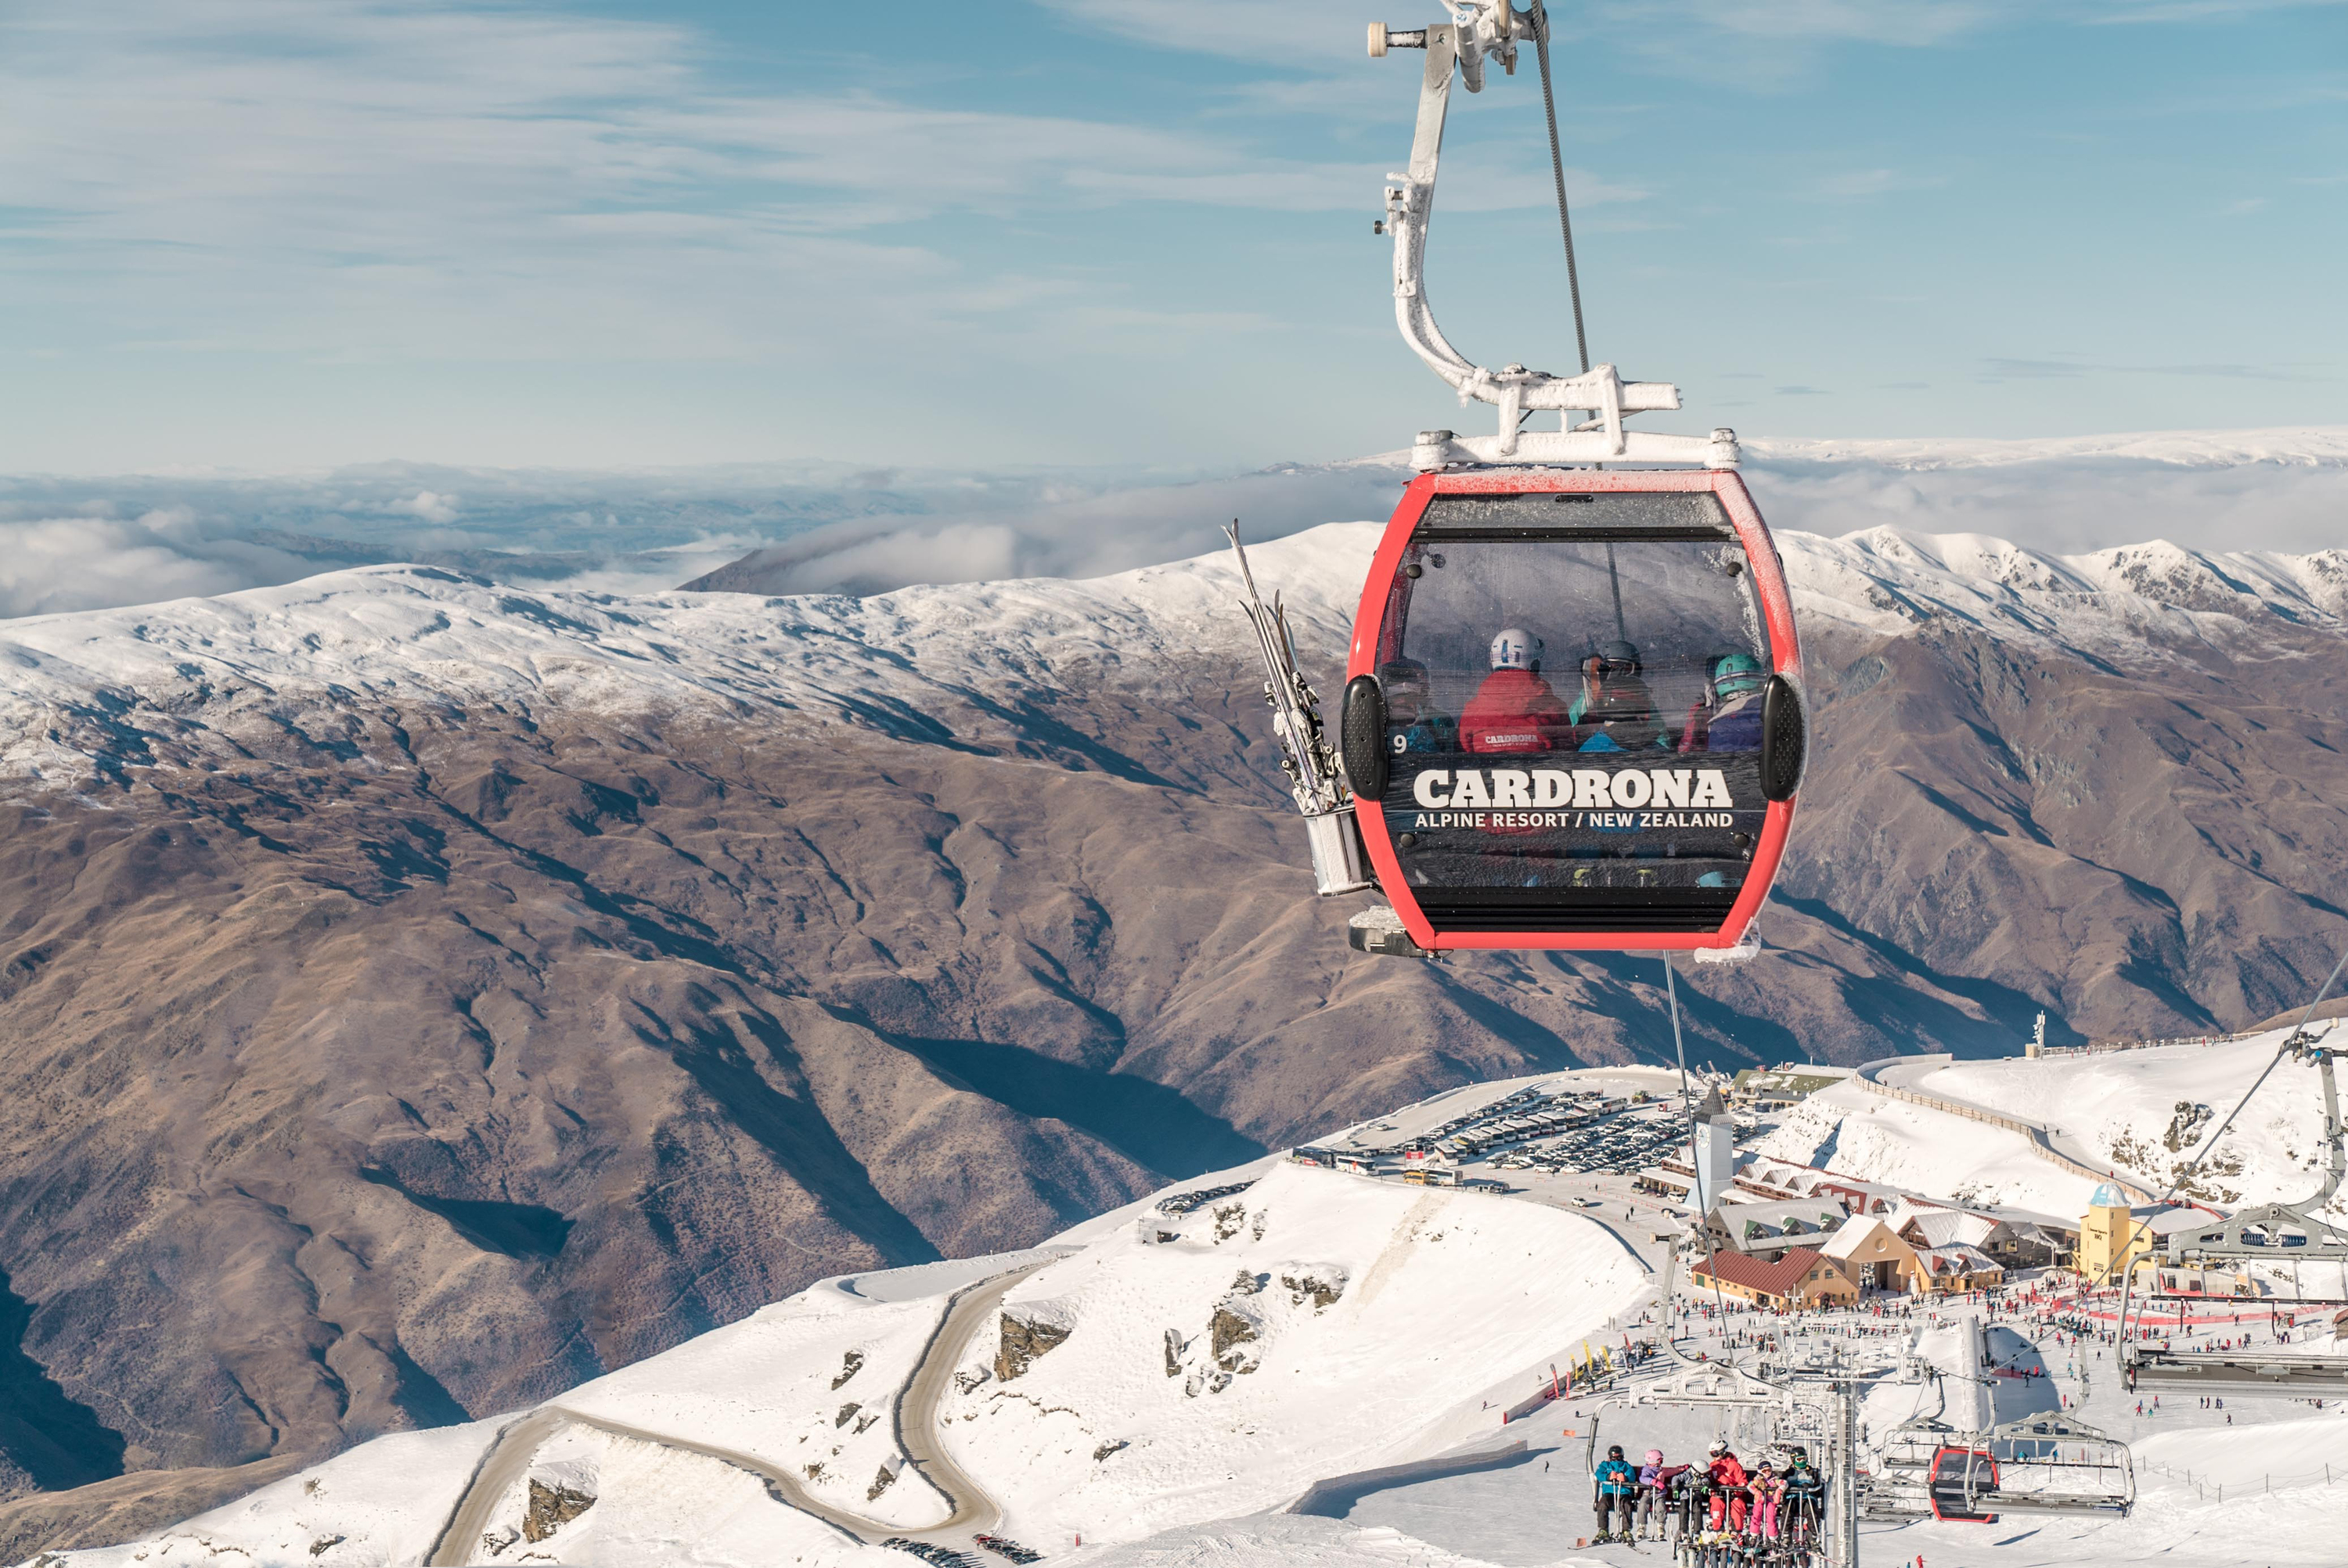 An enclosed chondola goes up the mountain at Cardrona Resort